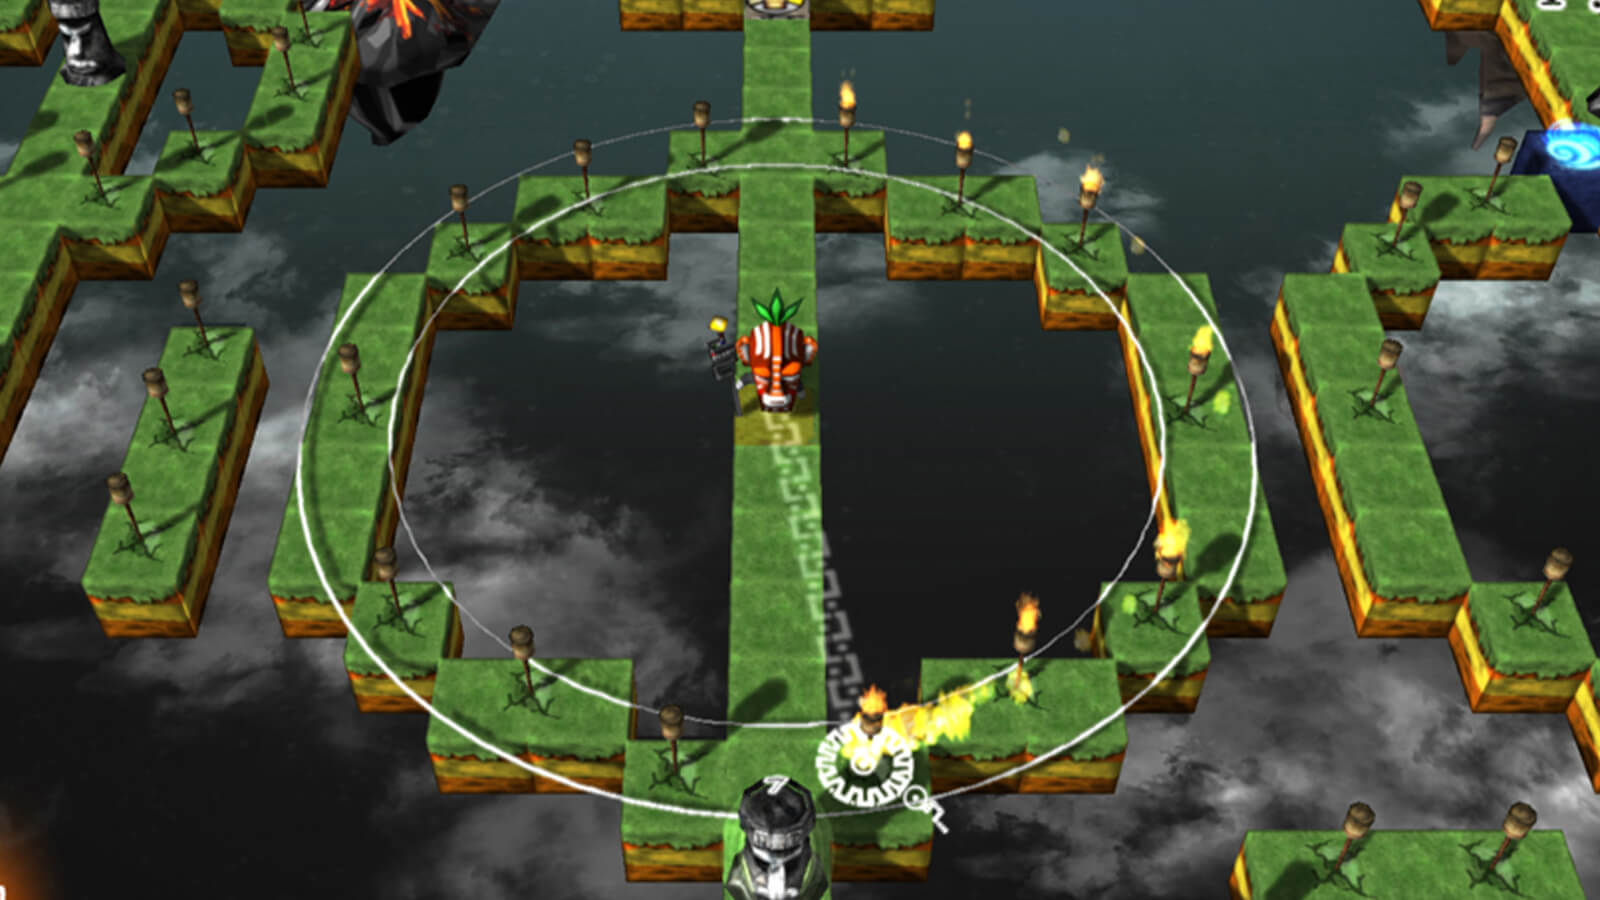 The player's character stands at the center of a single-block row and is lighting torches arranged in a circle around itself